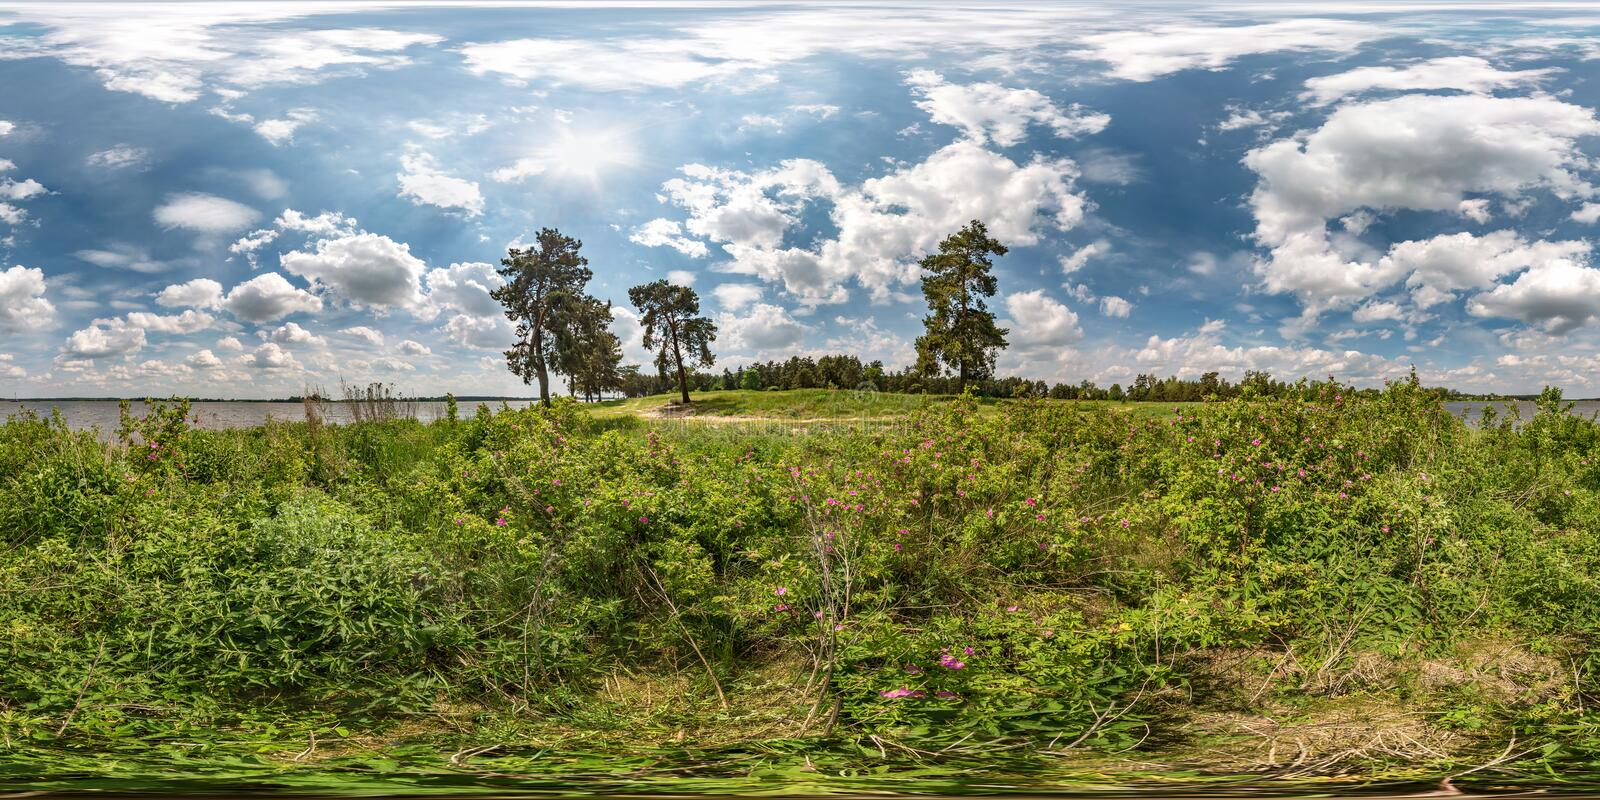 Full seamless spherical hdri panorama 360 degrees angle view on grass coast of huge lake or river in dog roses bushes  and windy. Weather with beautiful clouds royalty free stock photos